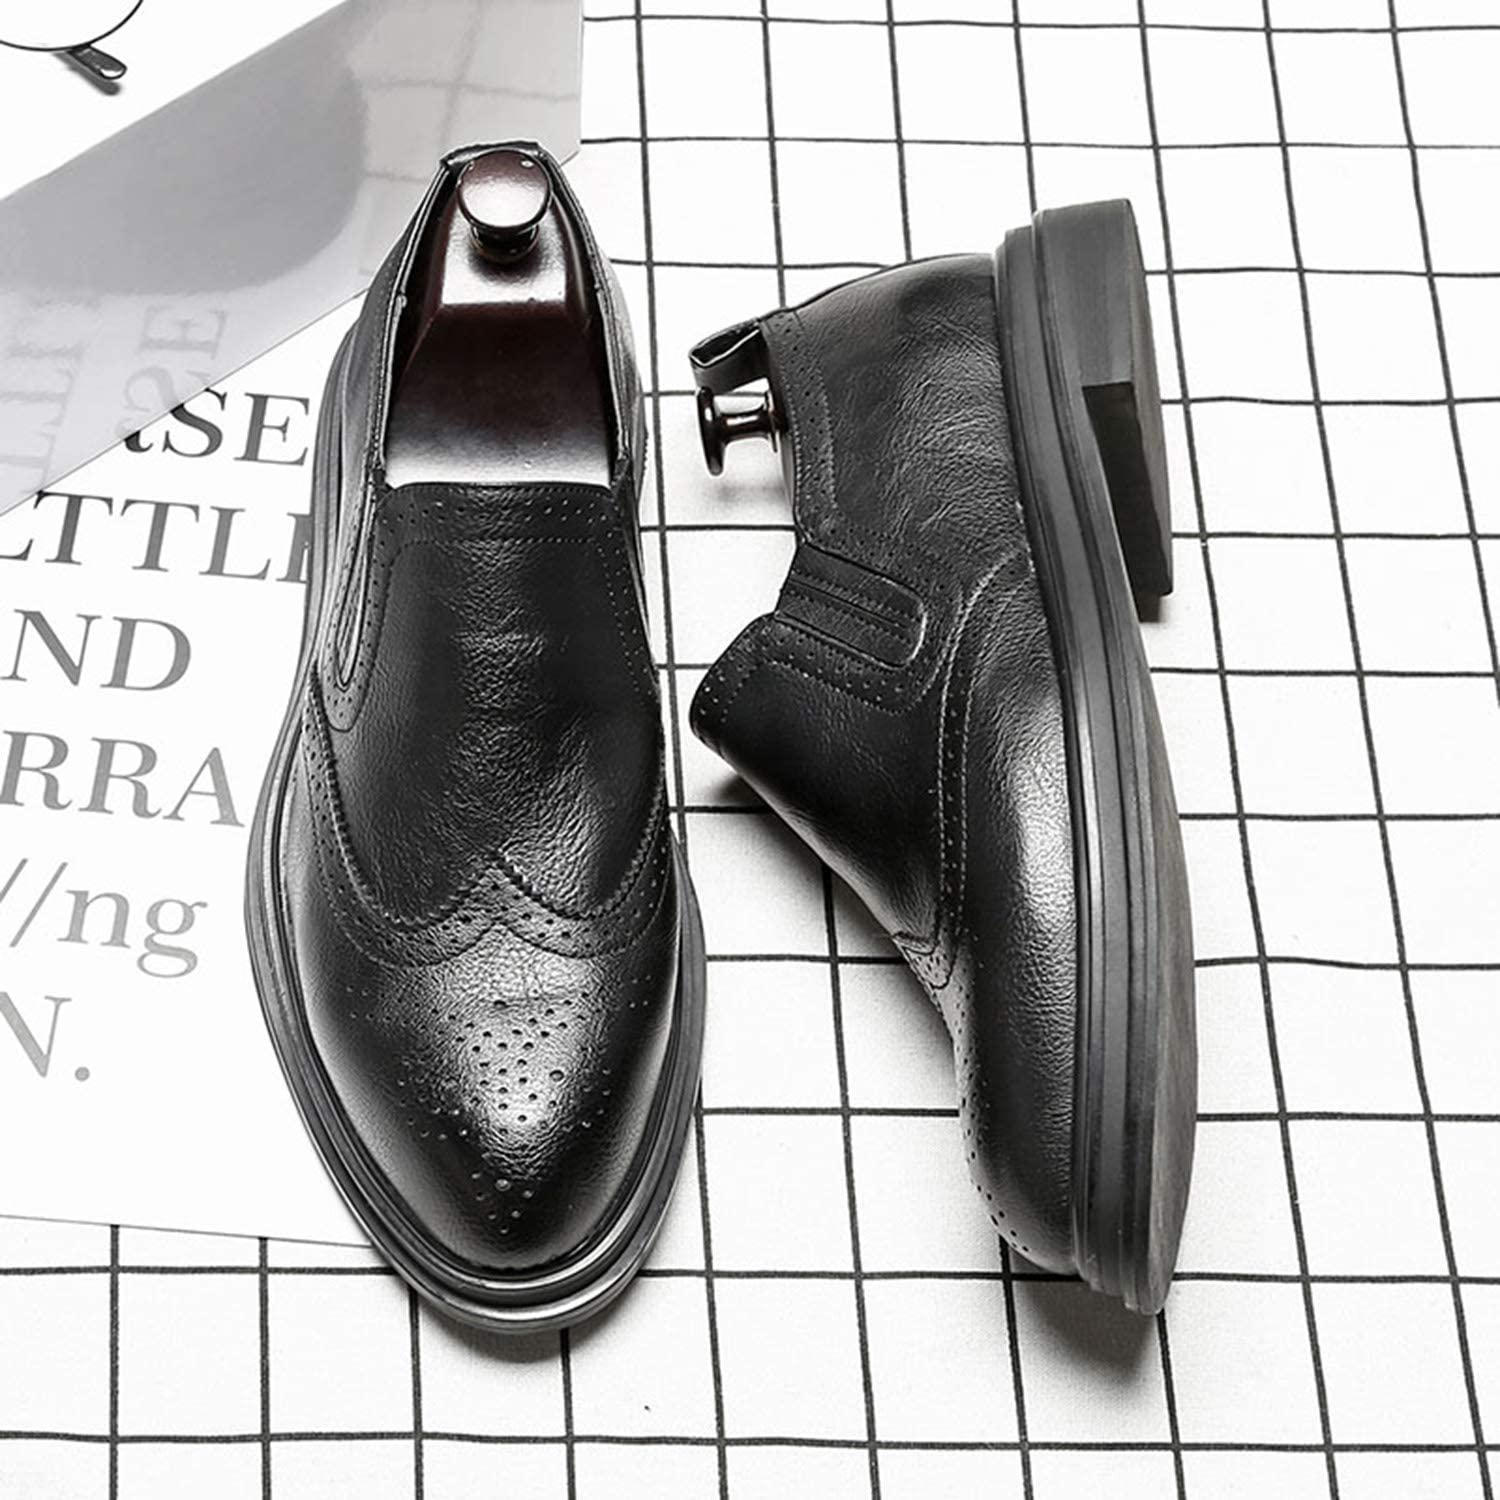 Duckmole Loafer for Men Leather Slip on Business Casual Pointed-Toe Mid-Heel Black Brown Grey Size 6-10